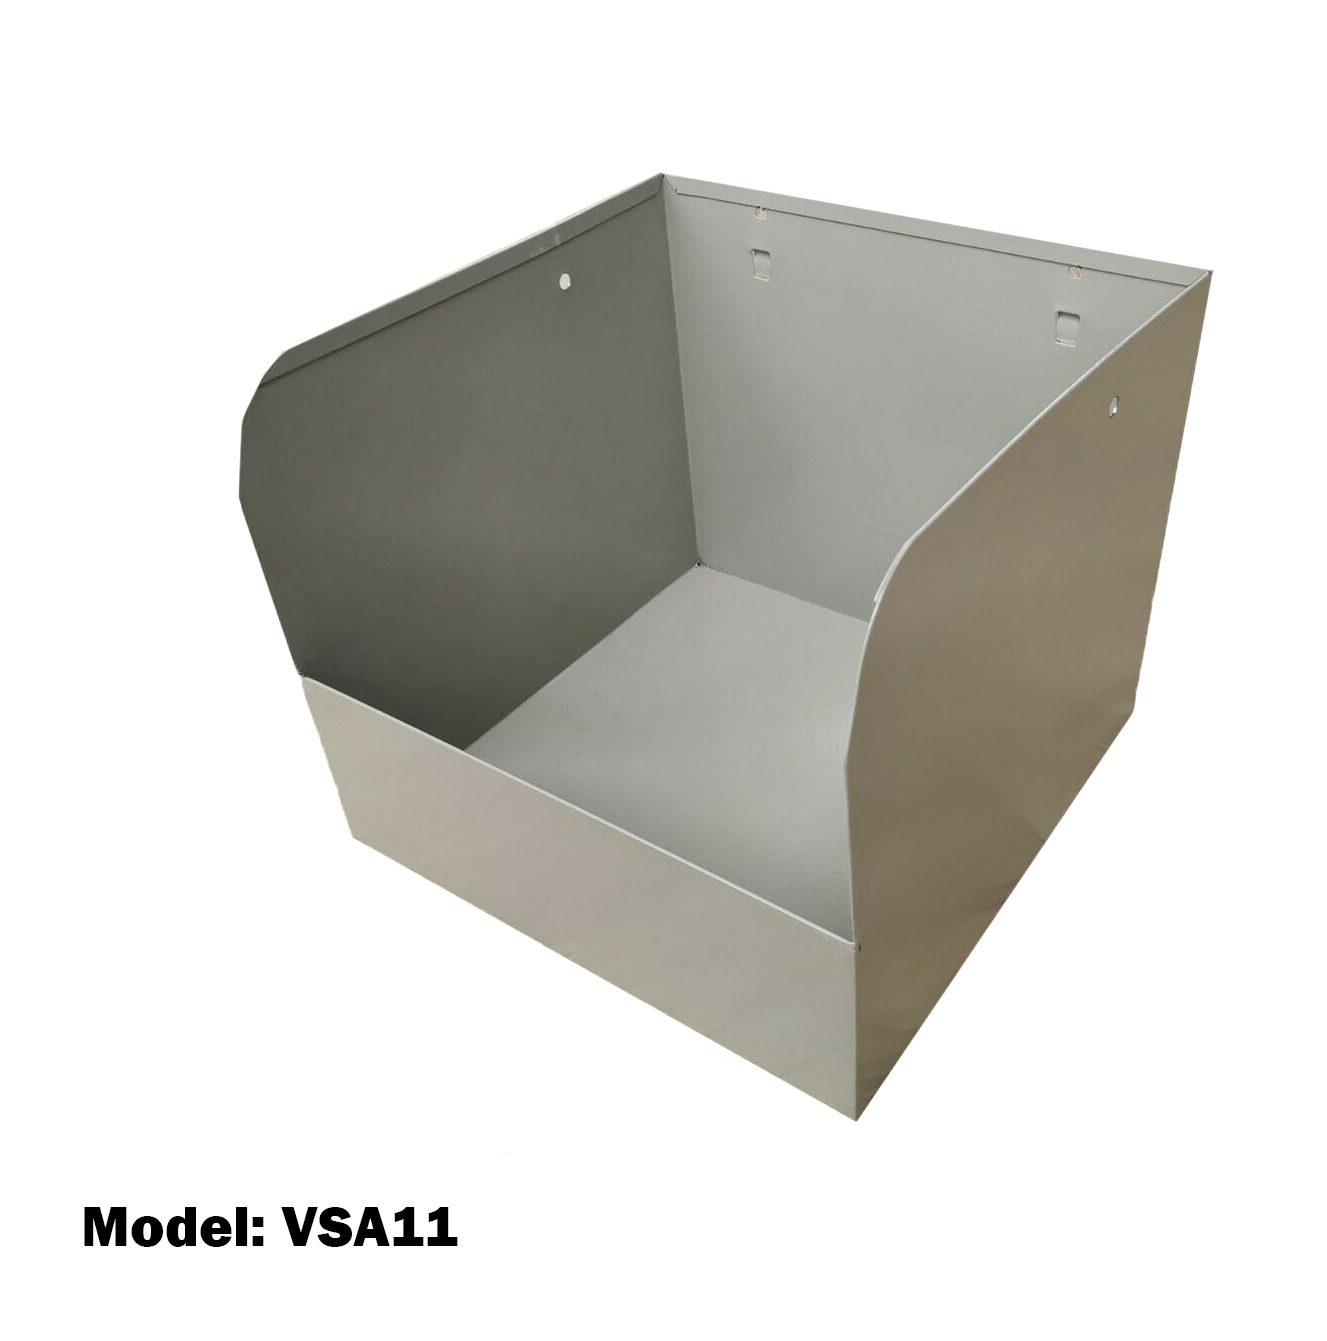 Van Shelving LPG Storage For Van Shelving System VSA11